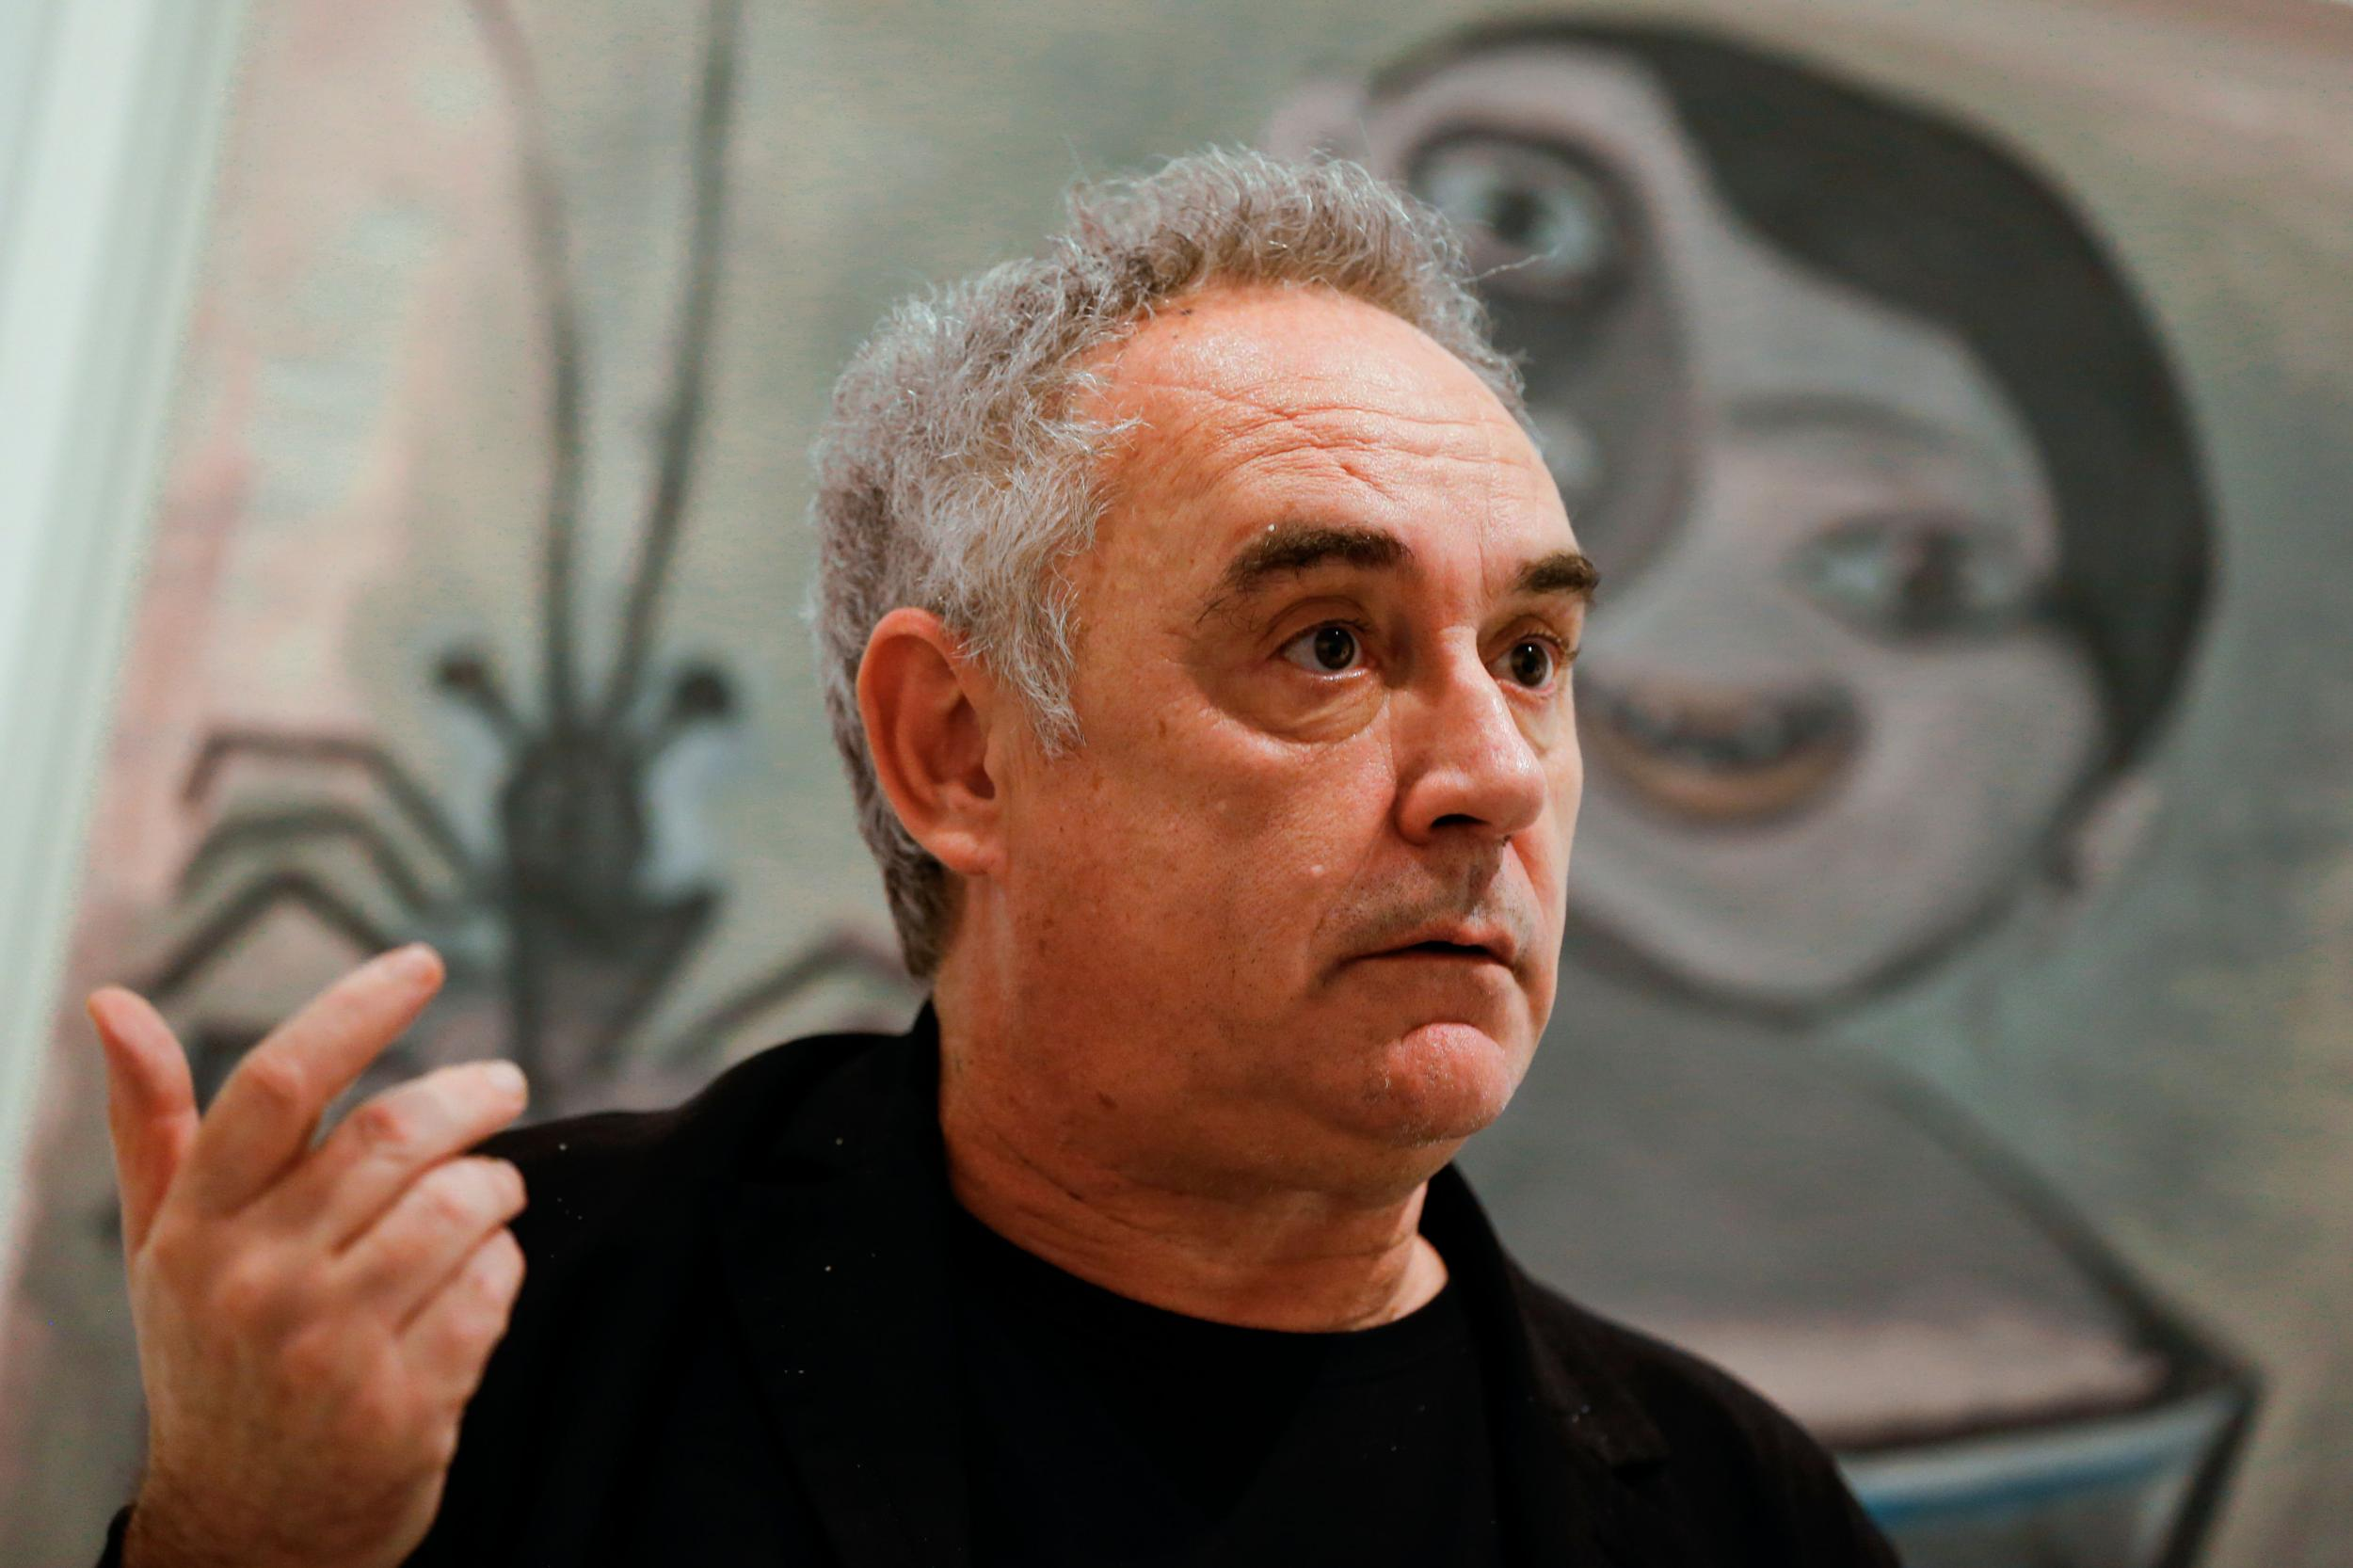 Spanish chef Ferran Adrià to reopen famed elBulli – but won't serve food 1